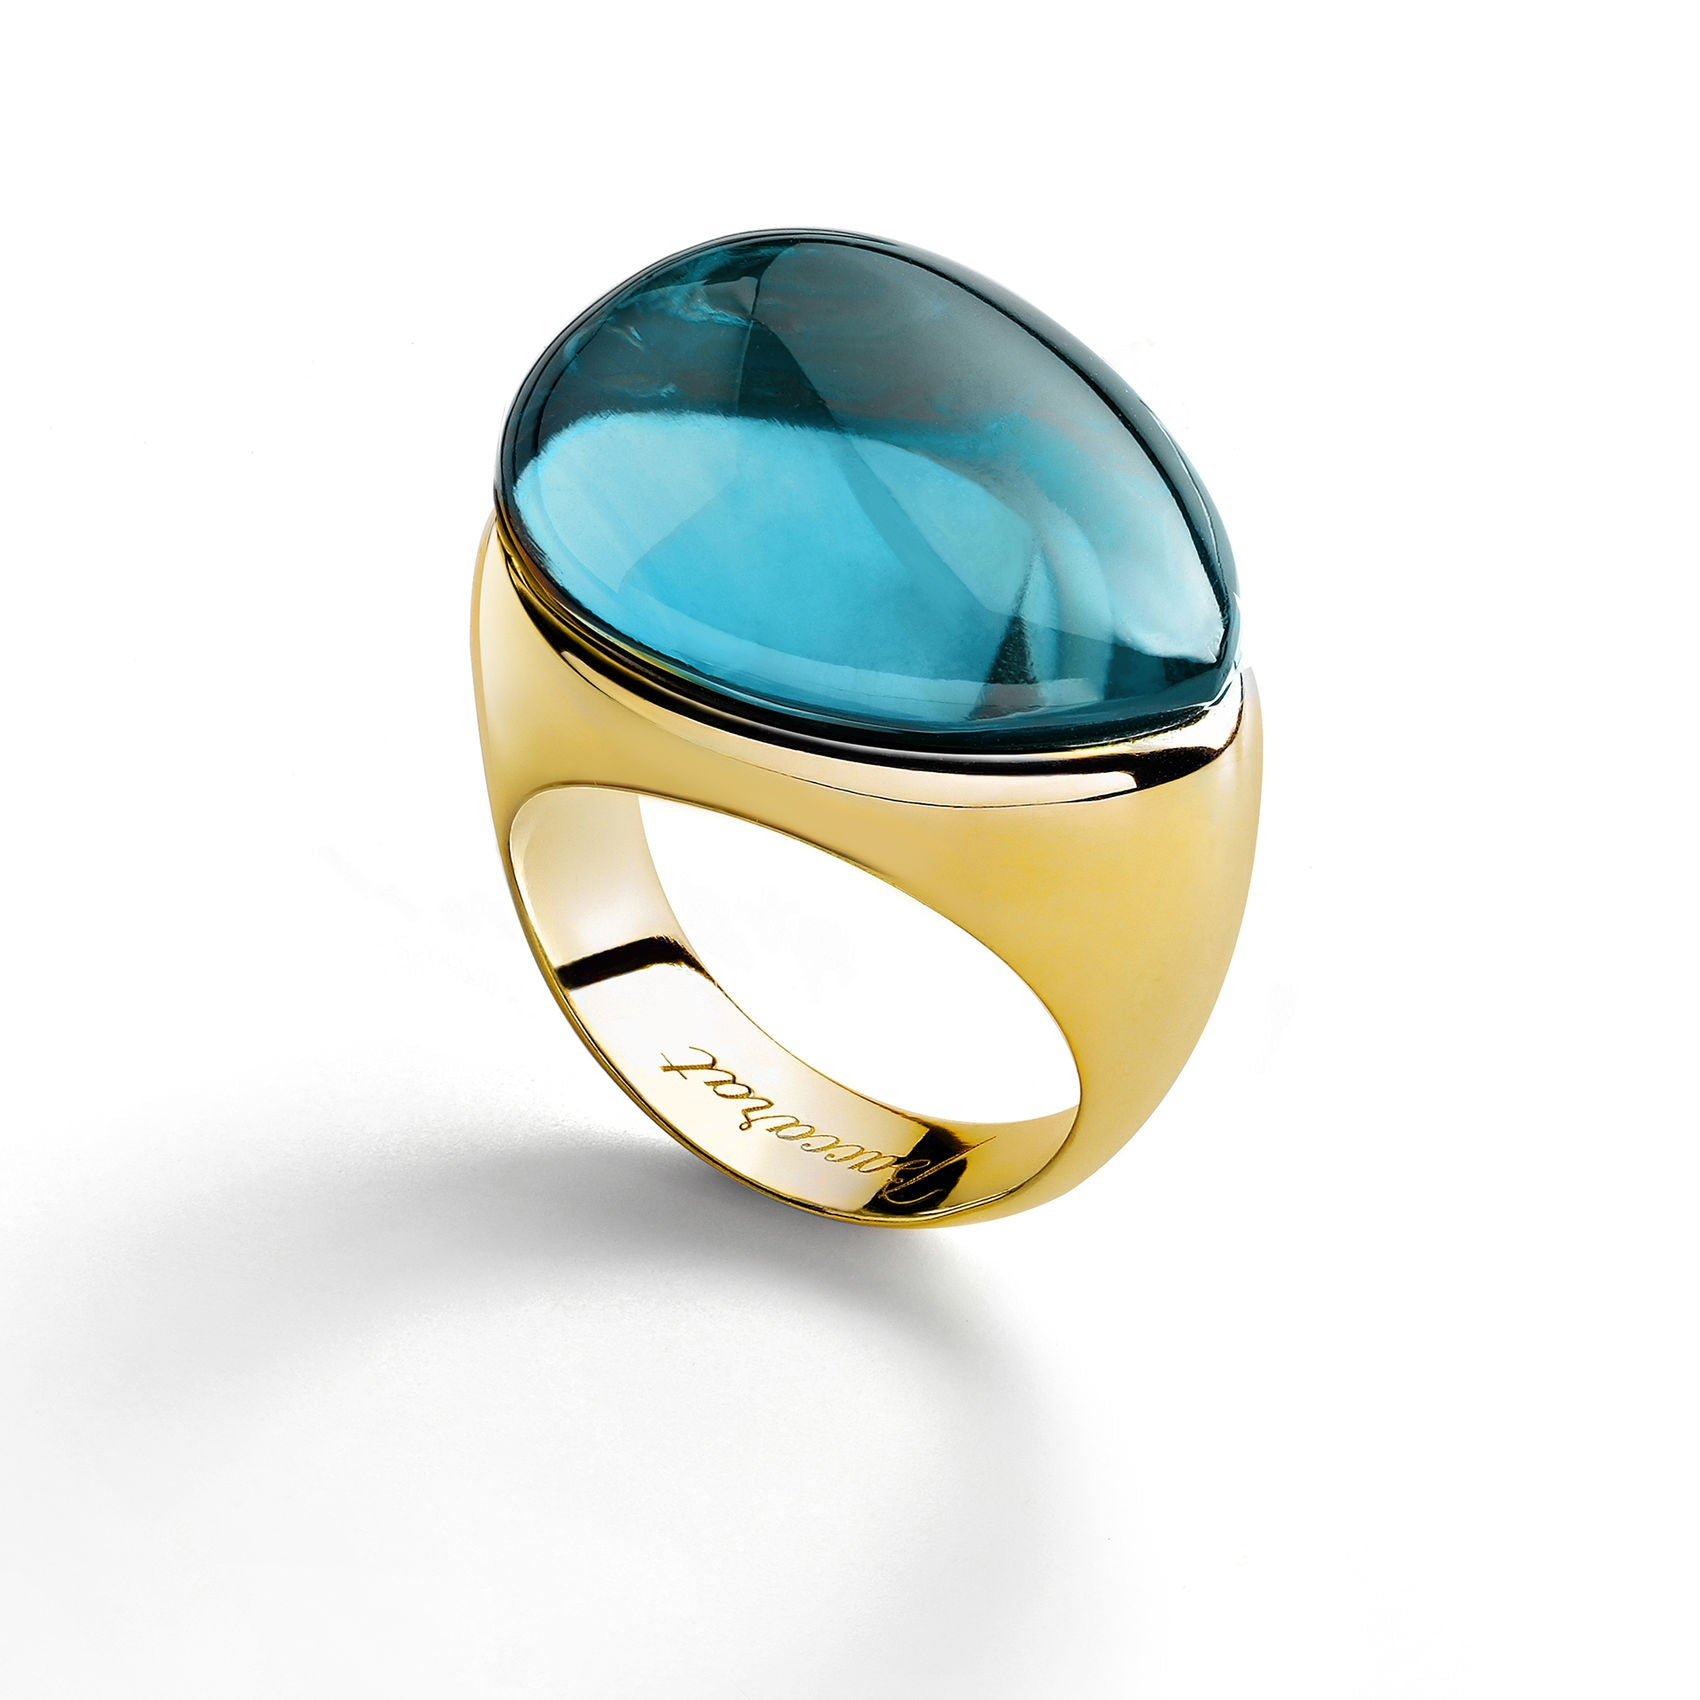 Baccarat Galea Vermeil Turquoise Ring - Andrew Scott